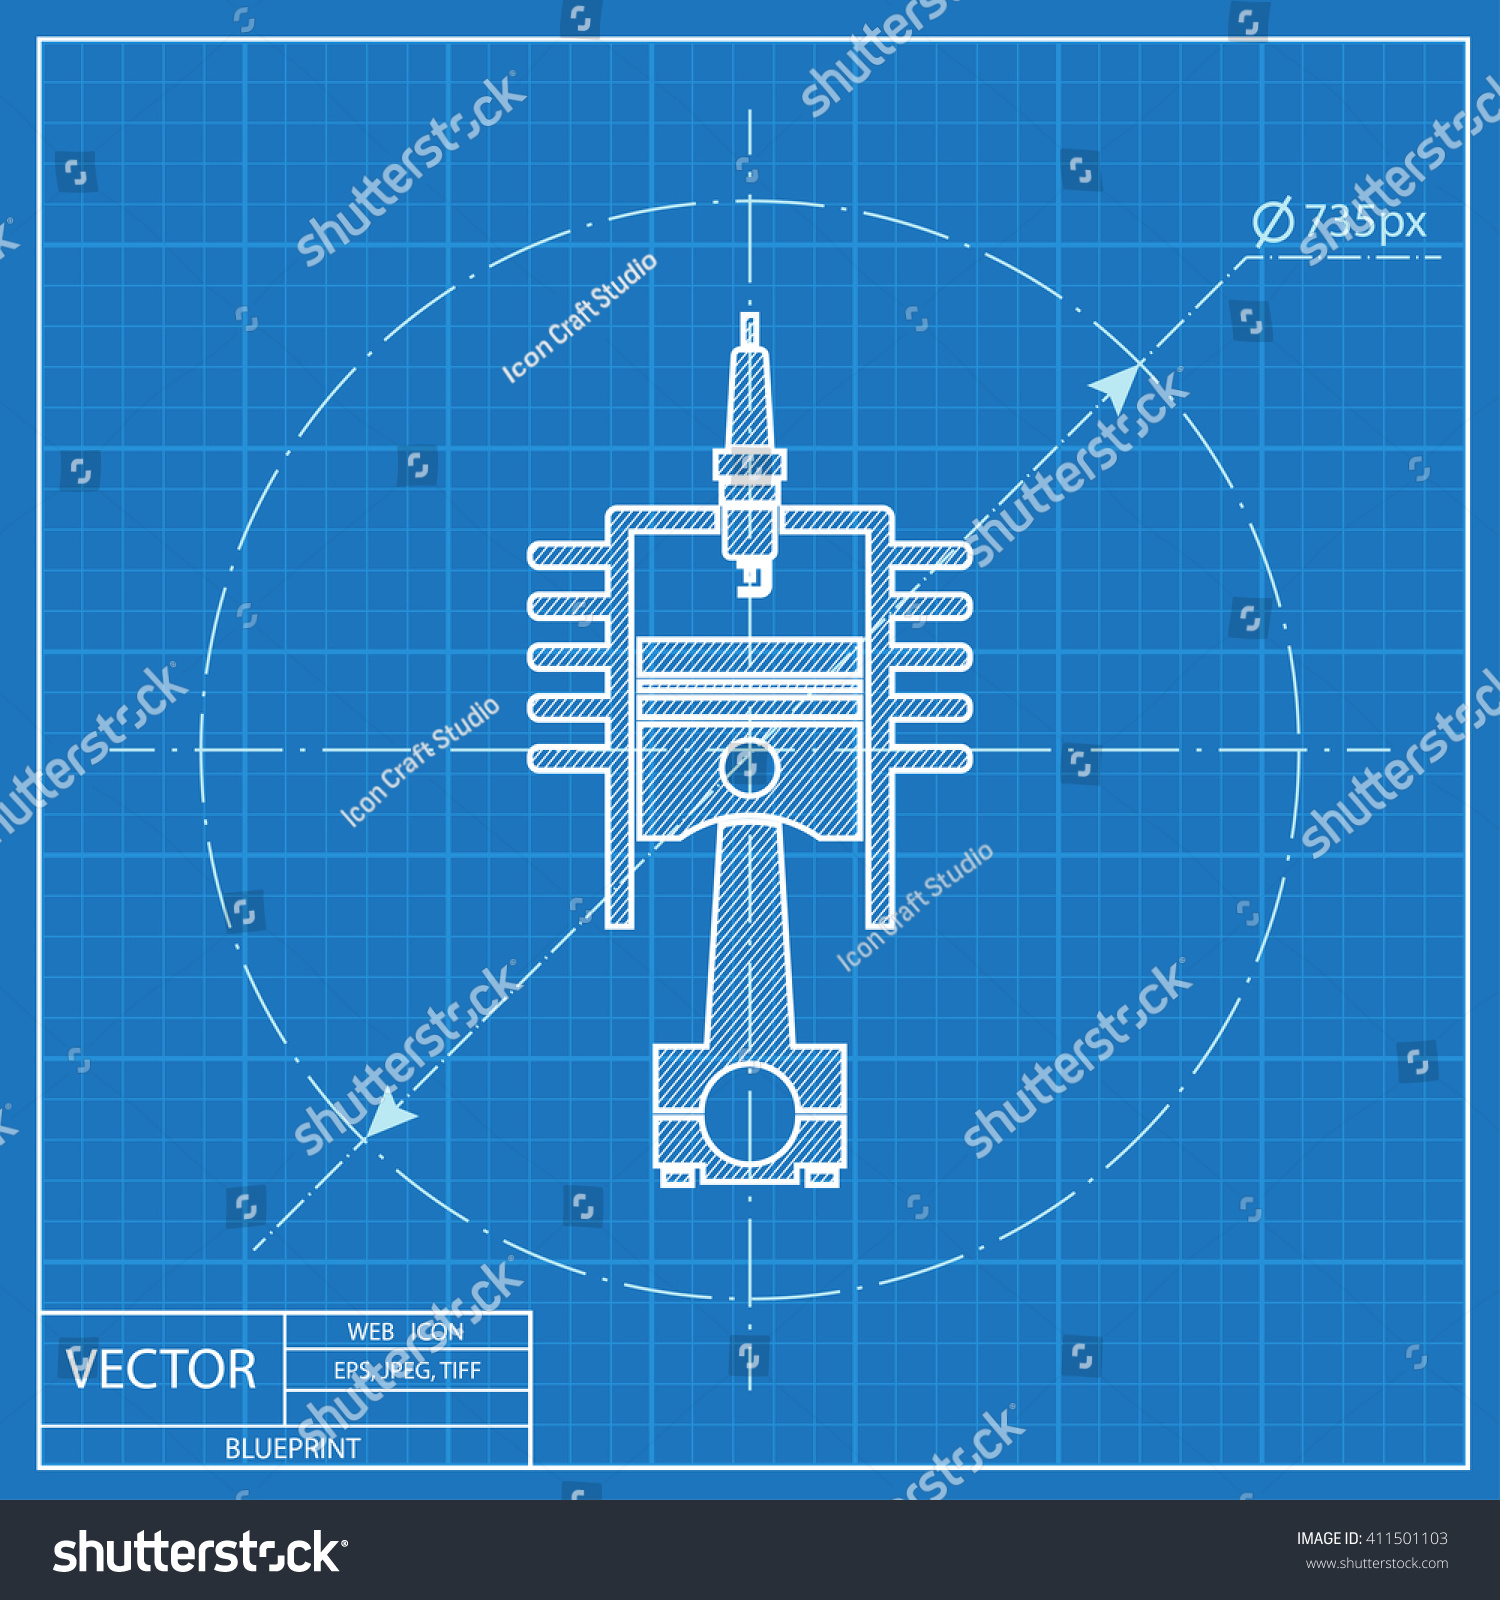 blueprint icon of engine piston and cylinder